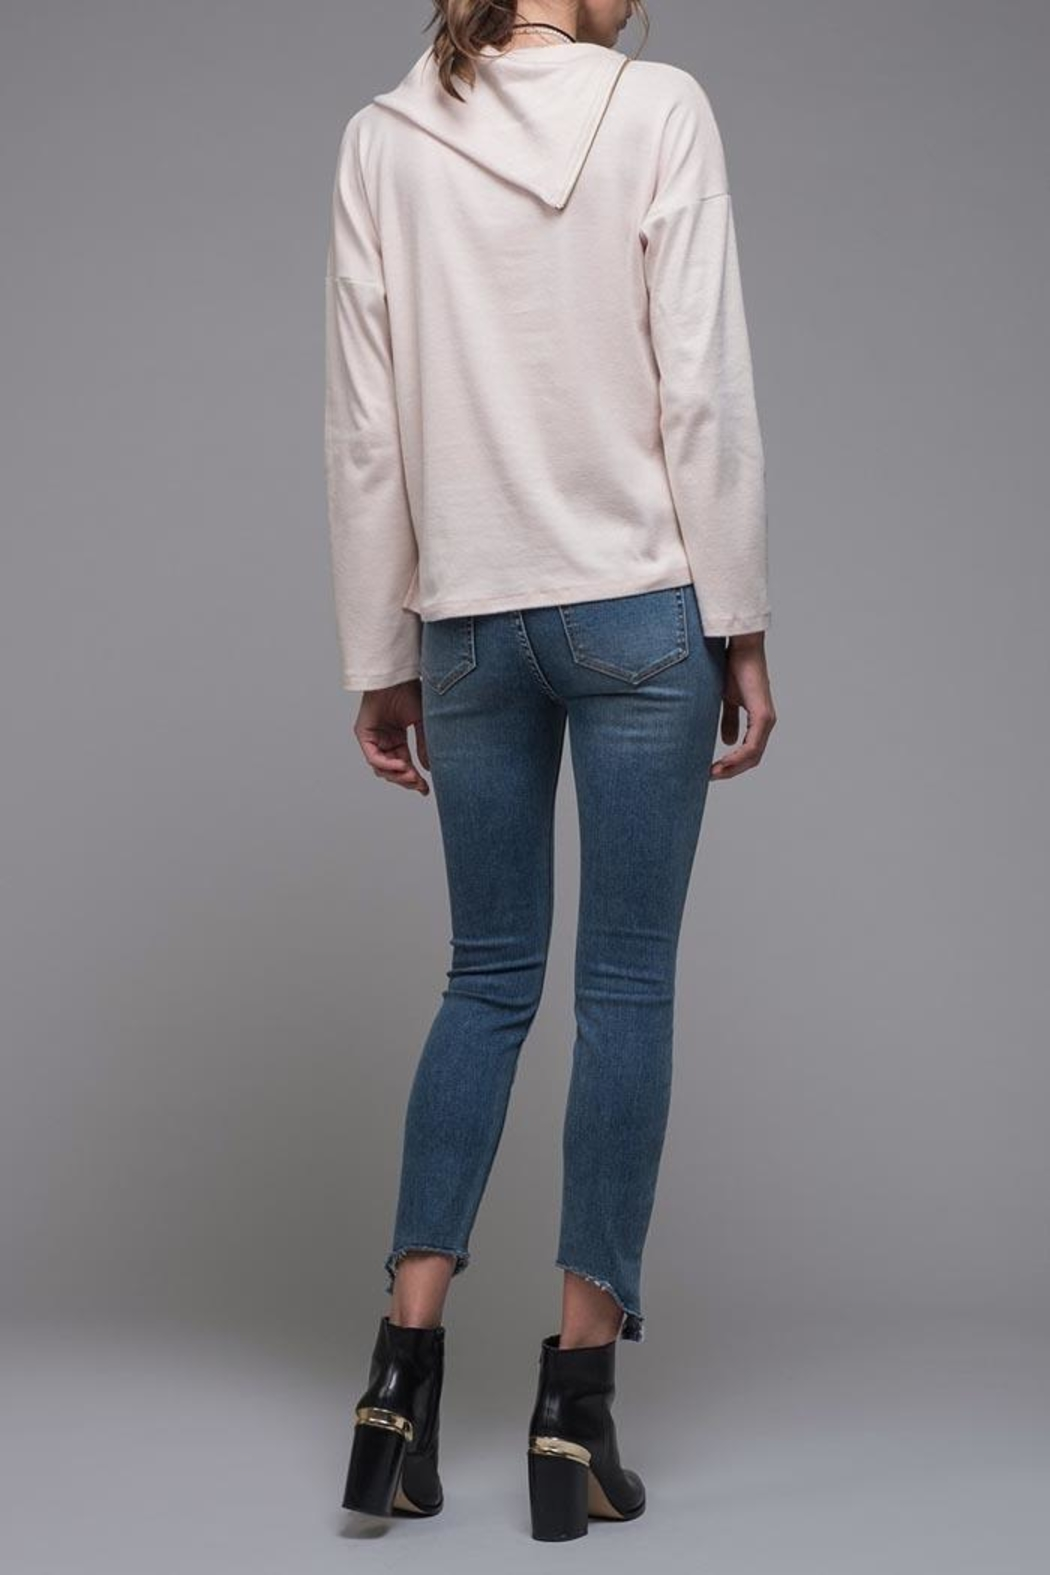 EVIDNT Asymmetrical Zip Top - Side Cropped Image